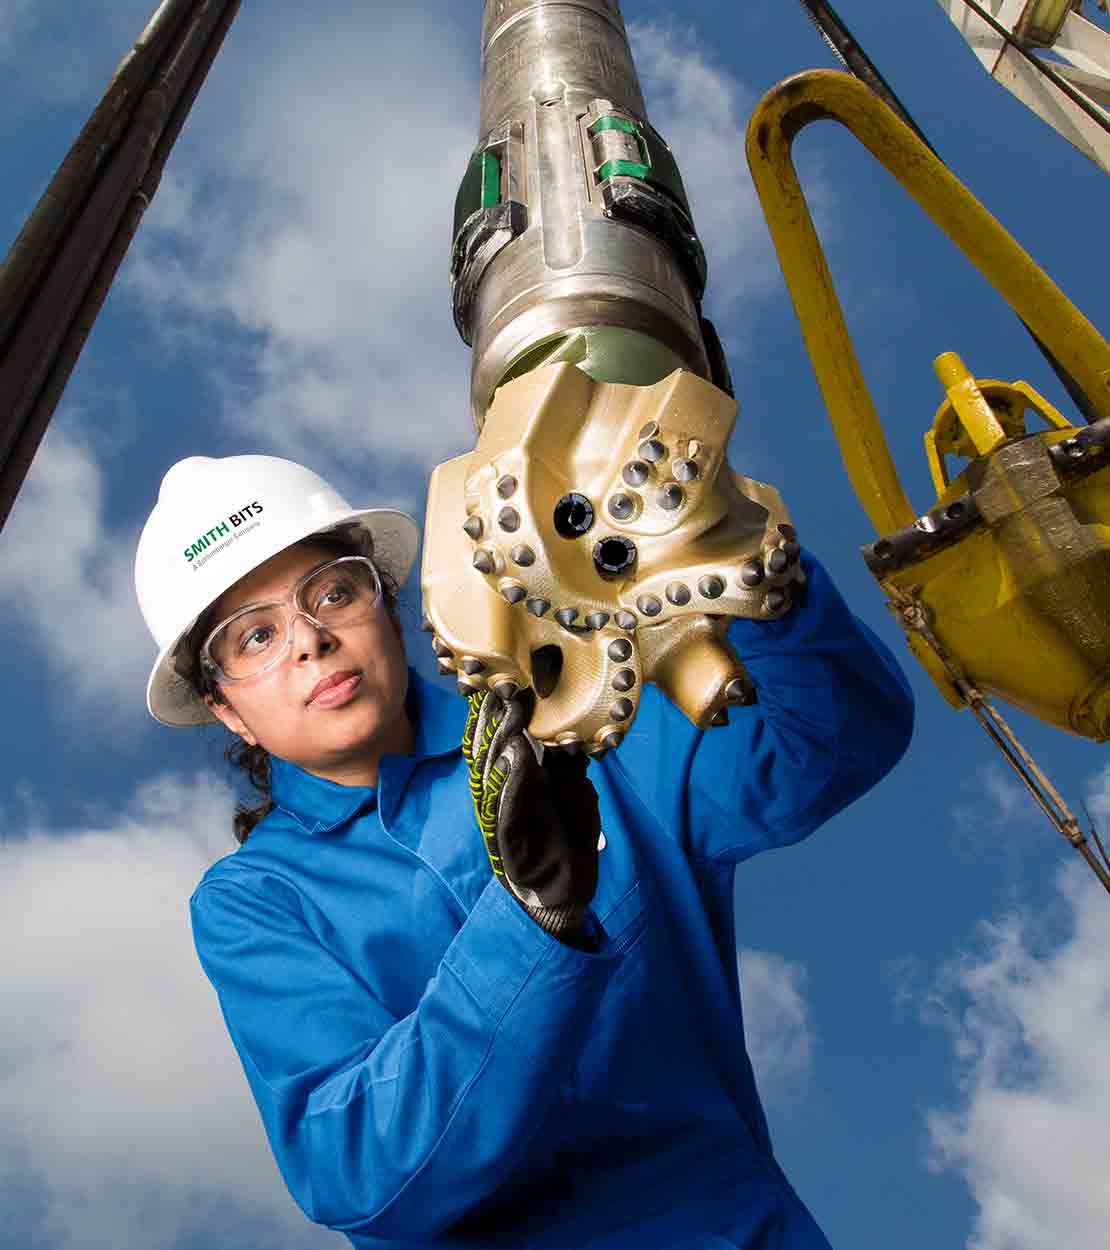 StingBlade - combo - female worker holding StingBlade drill bit on a rig.